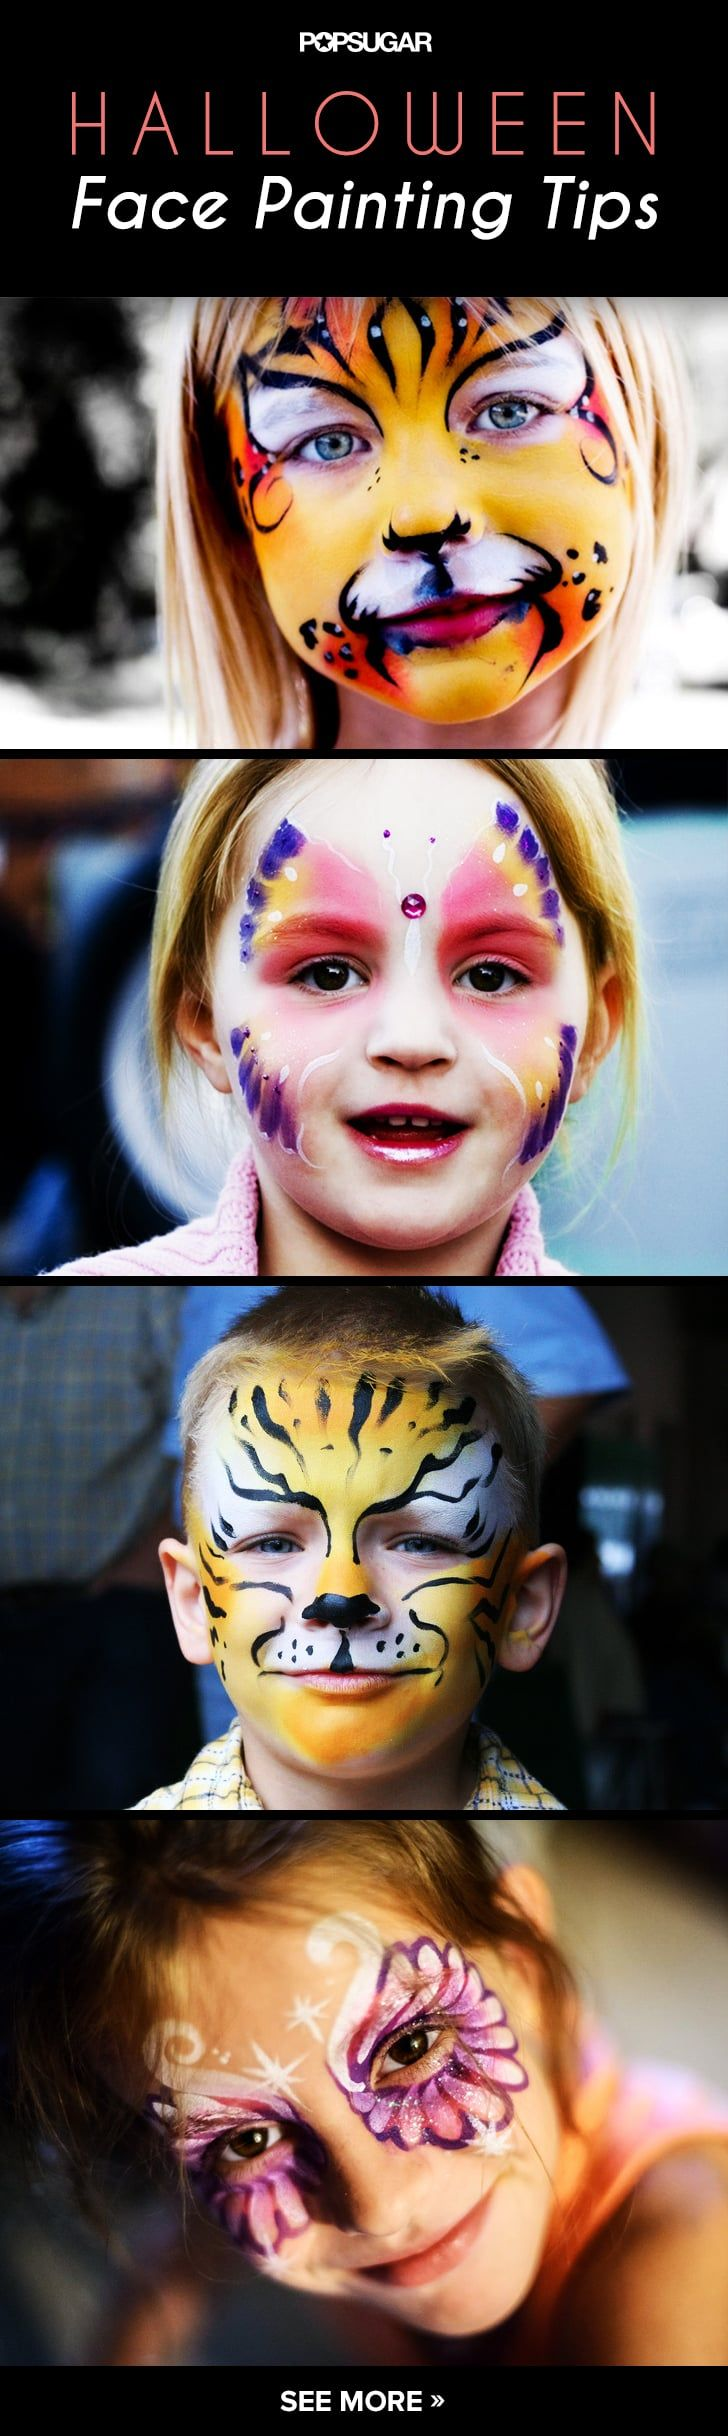 Pin for Later: Tips and Tricks For Halloween Face Painting Success